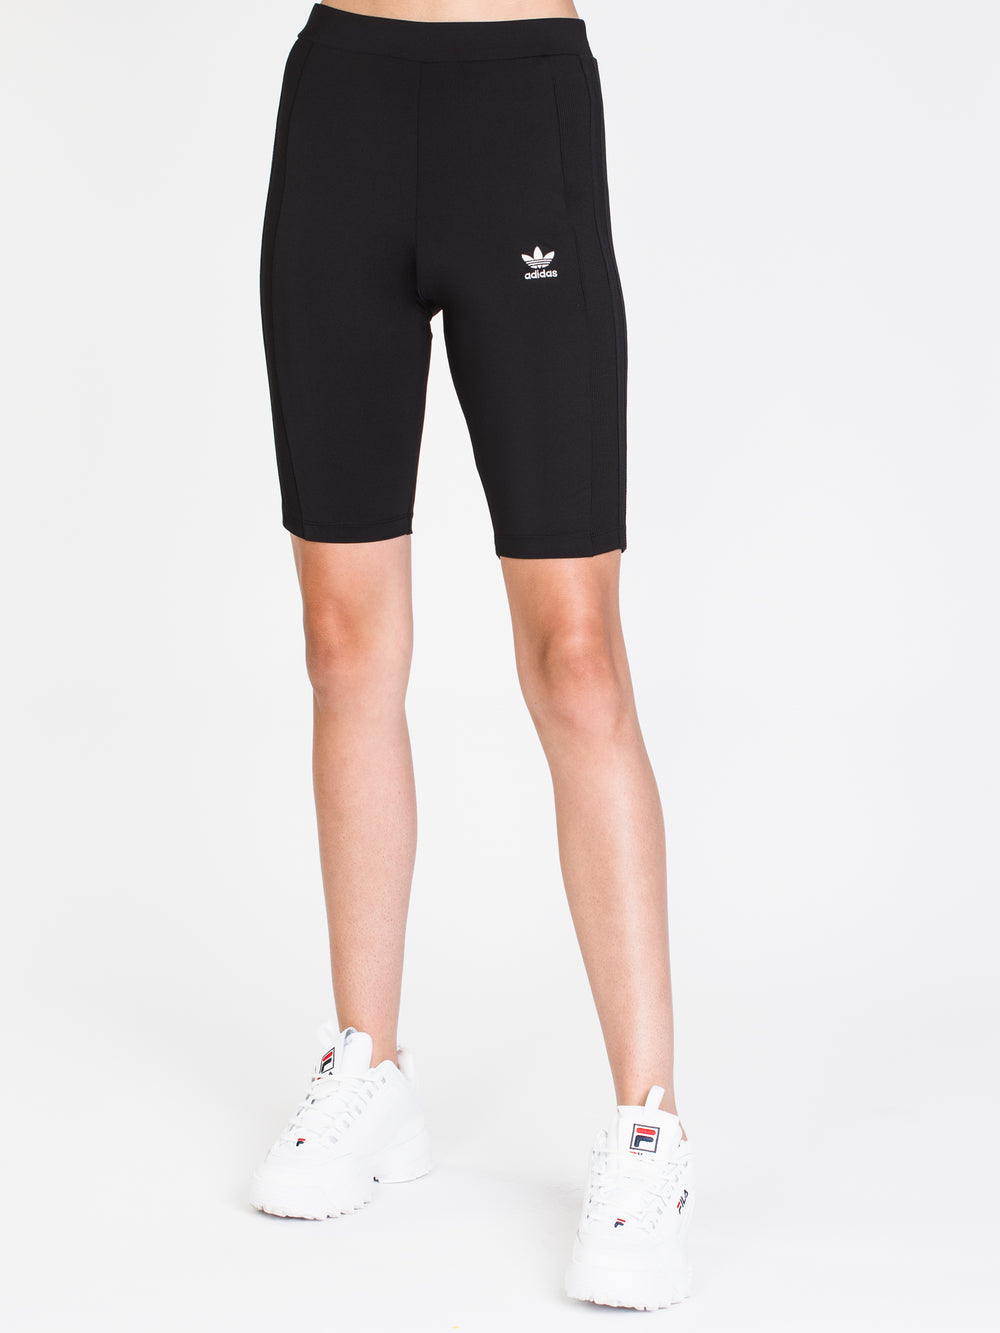 WOMENS CYCLING SHORT - BLACK